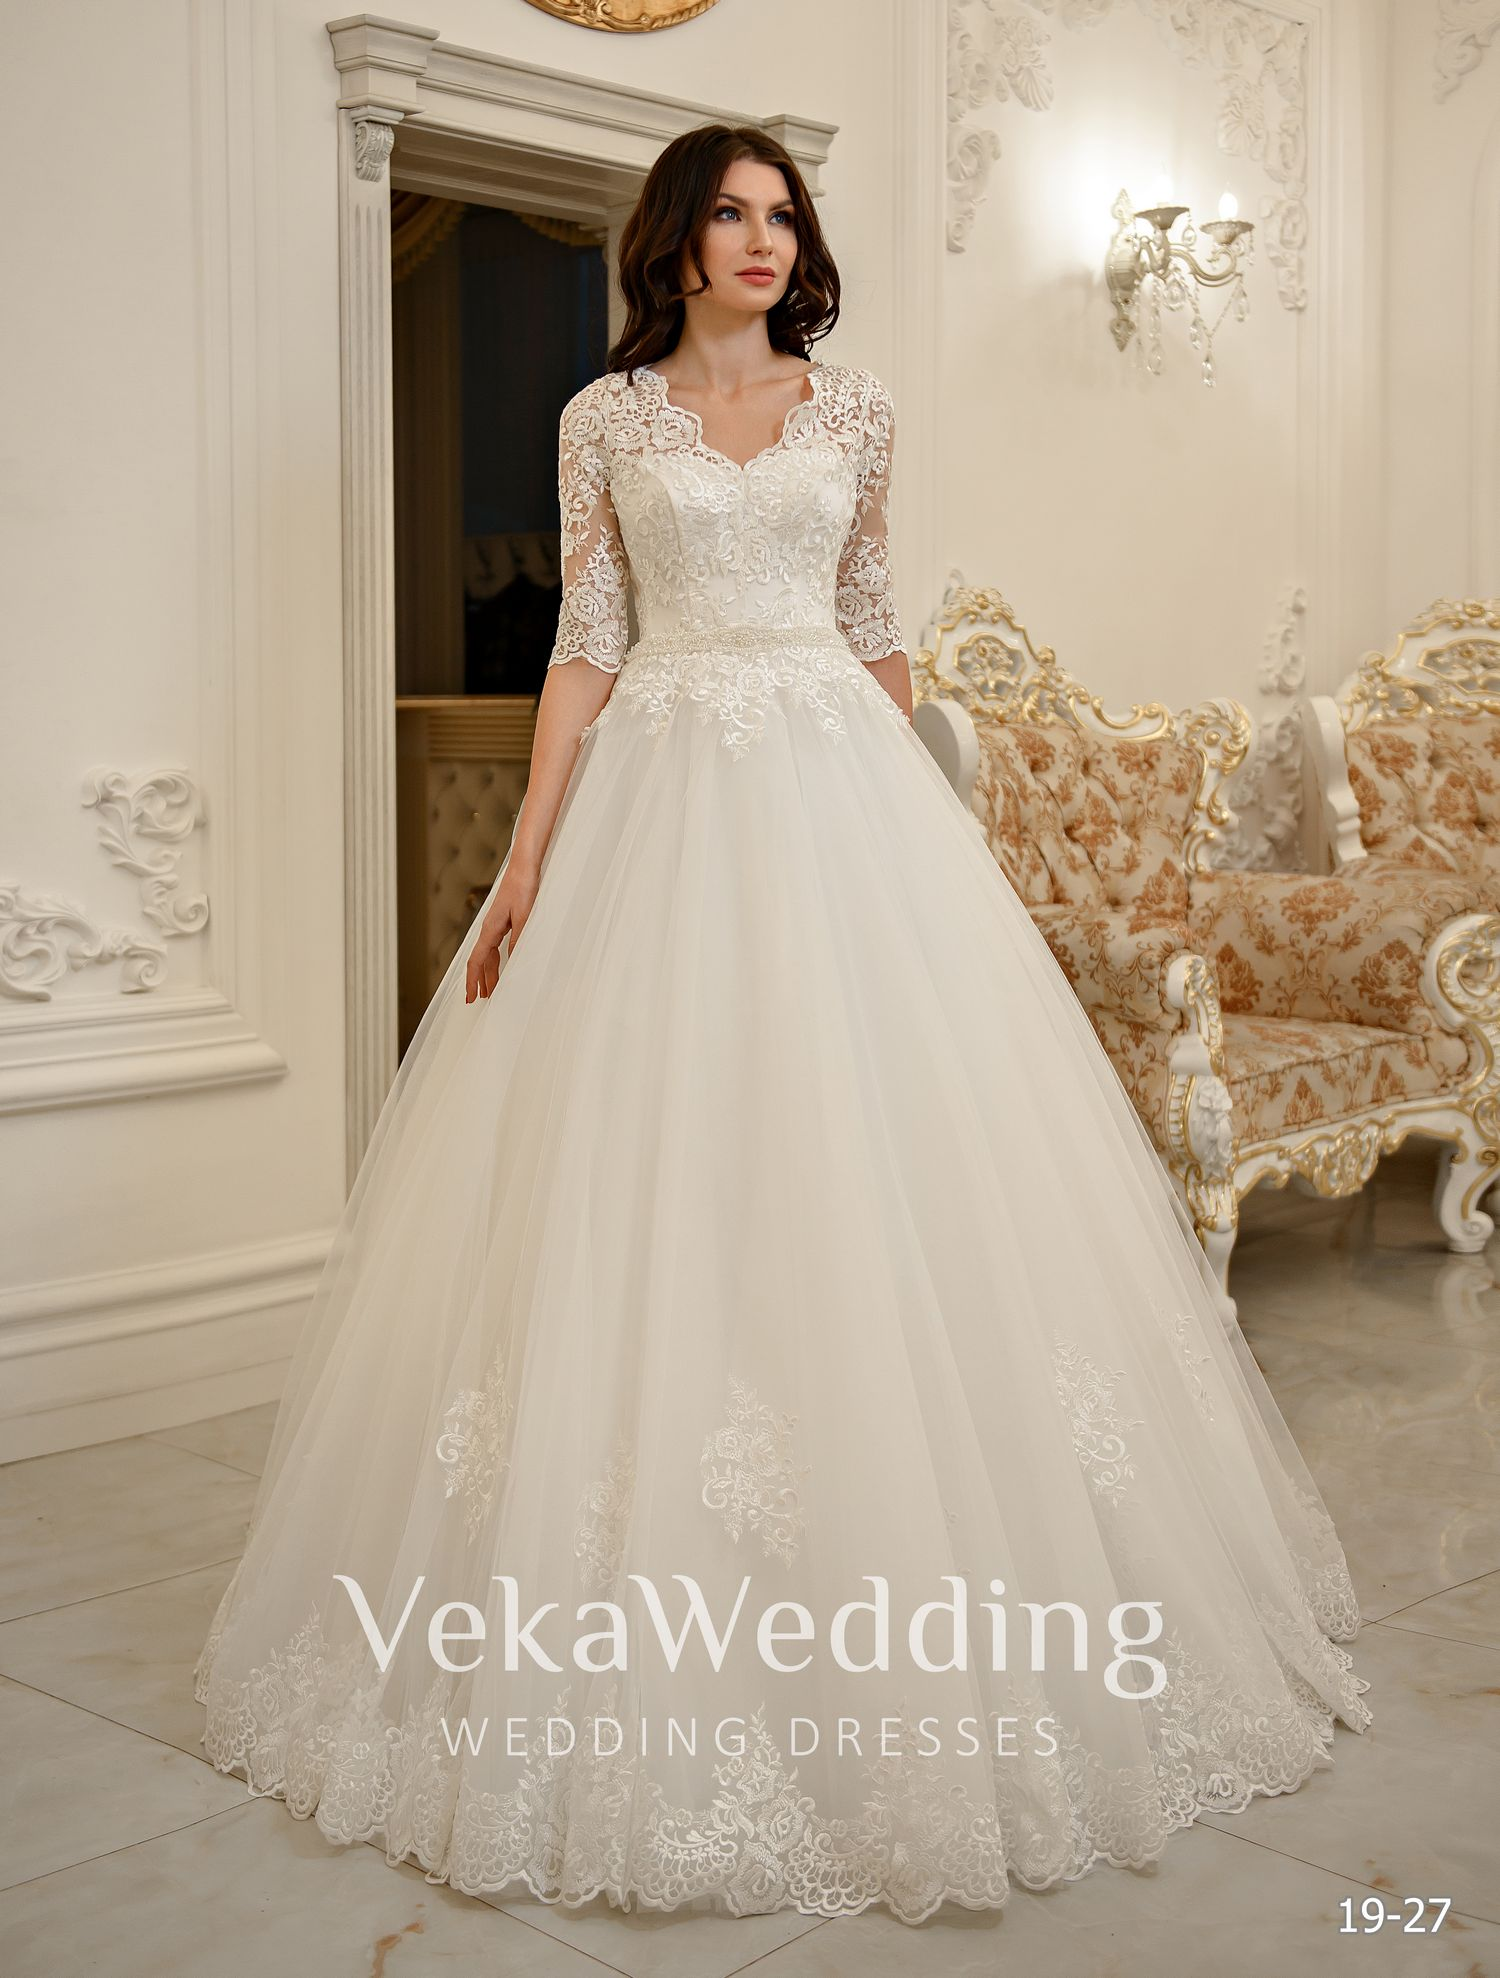 https://vekawedding.com/images/stories/virtuemart/product/19-27       (1).jpg